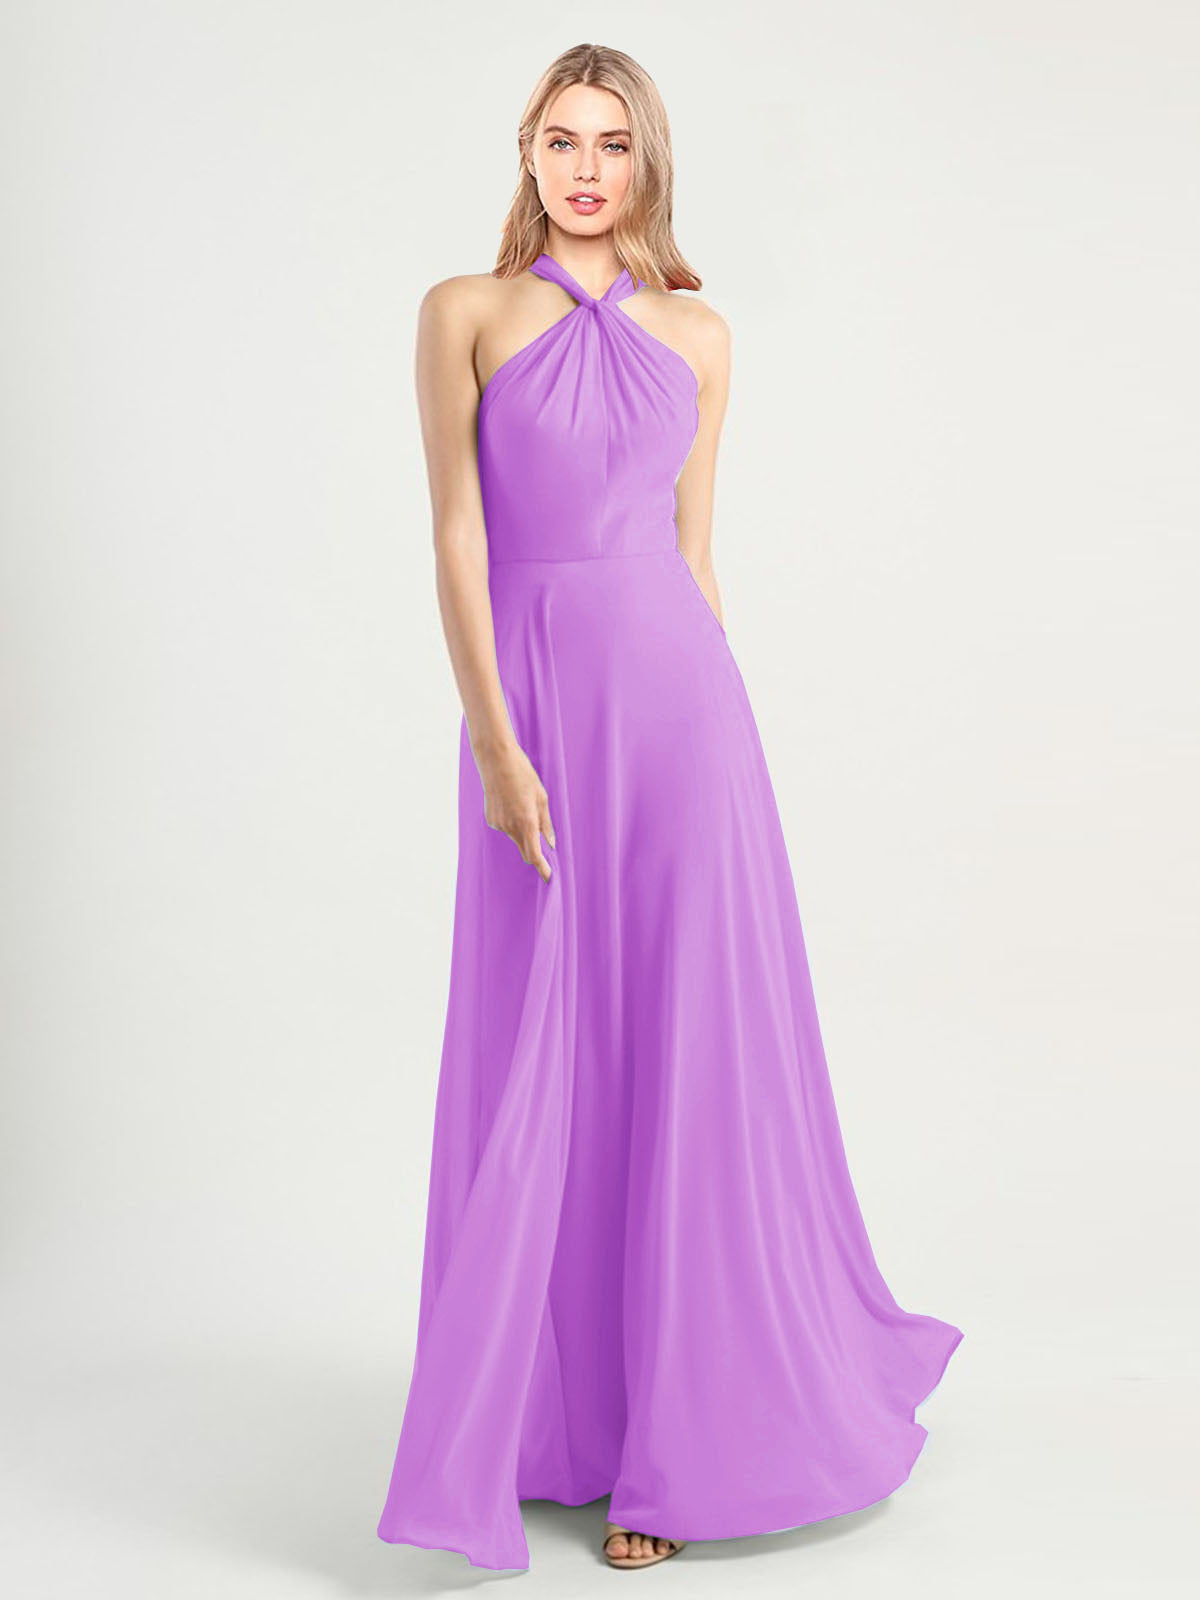 Long A-Line High Neck, Halter Sleeveless Violet Chiffon Bridesmaid Dress Yoli